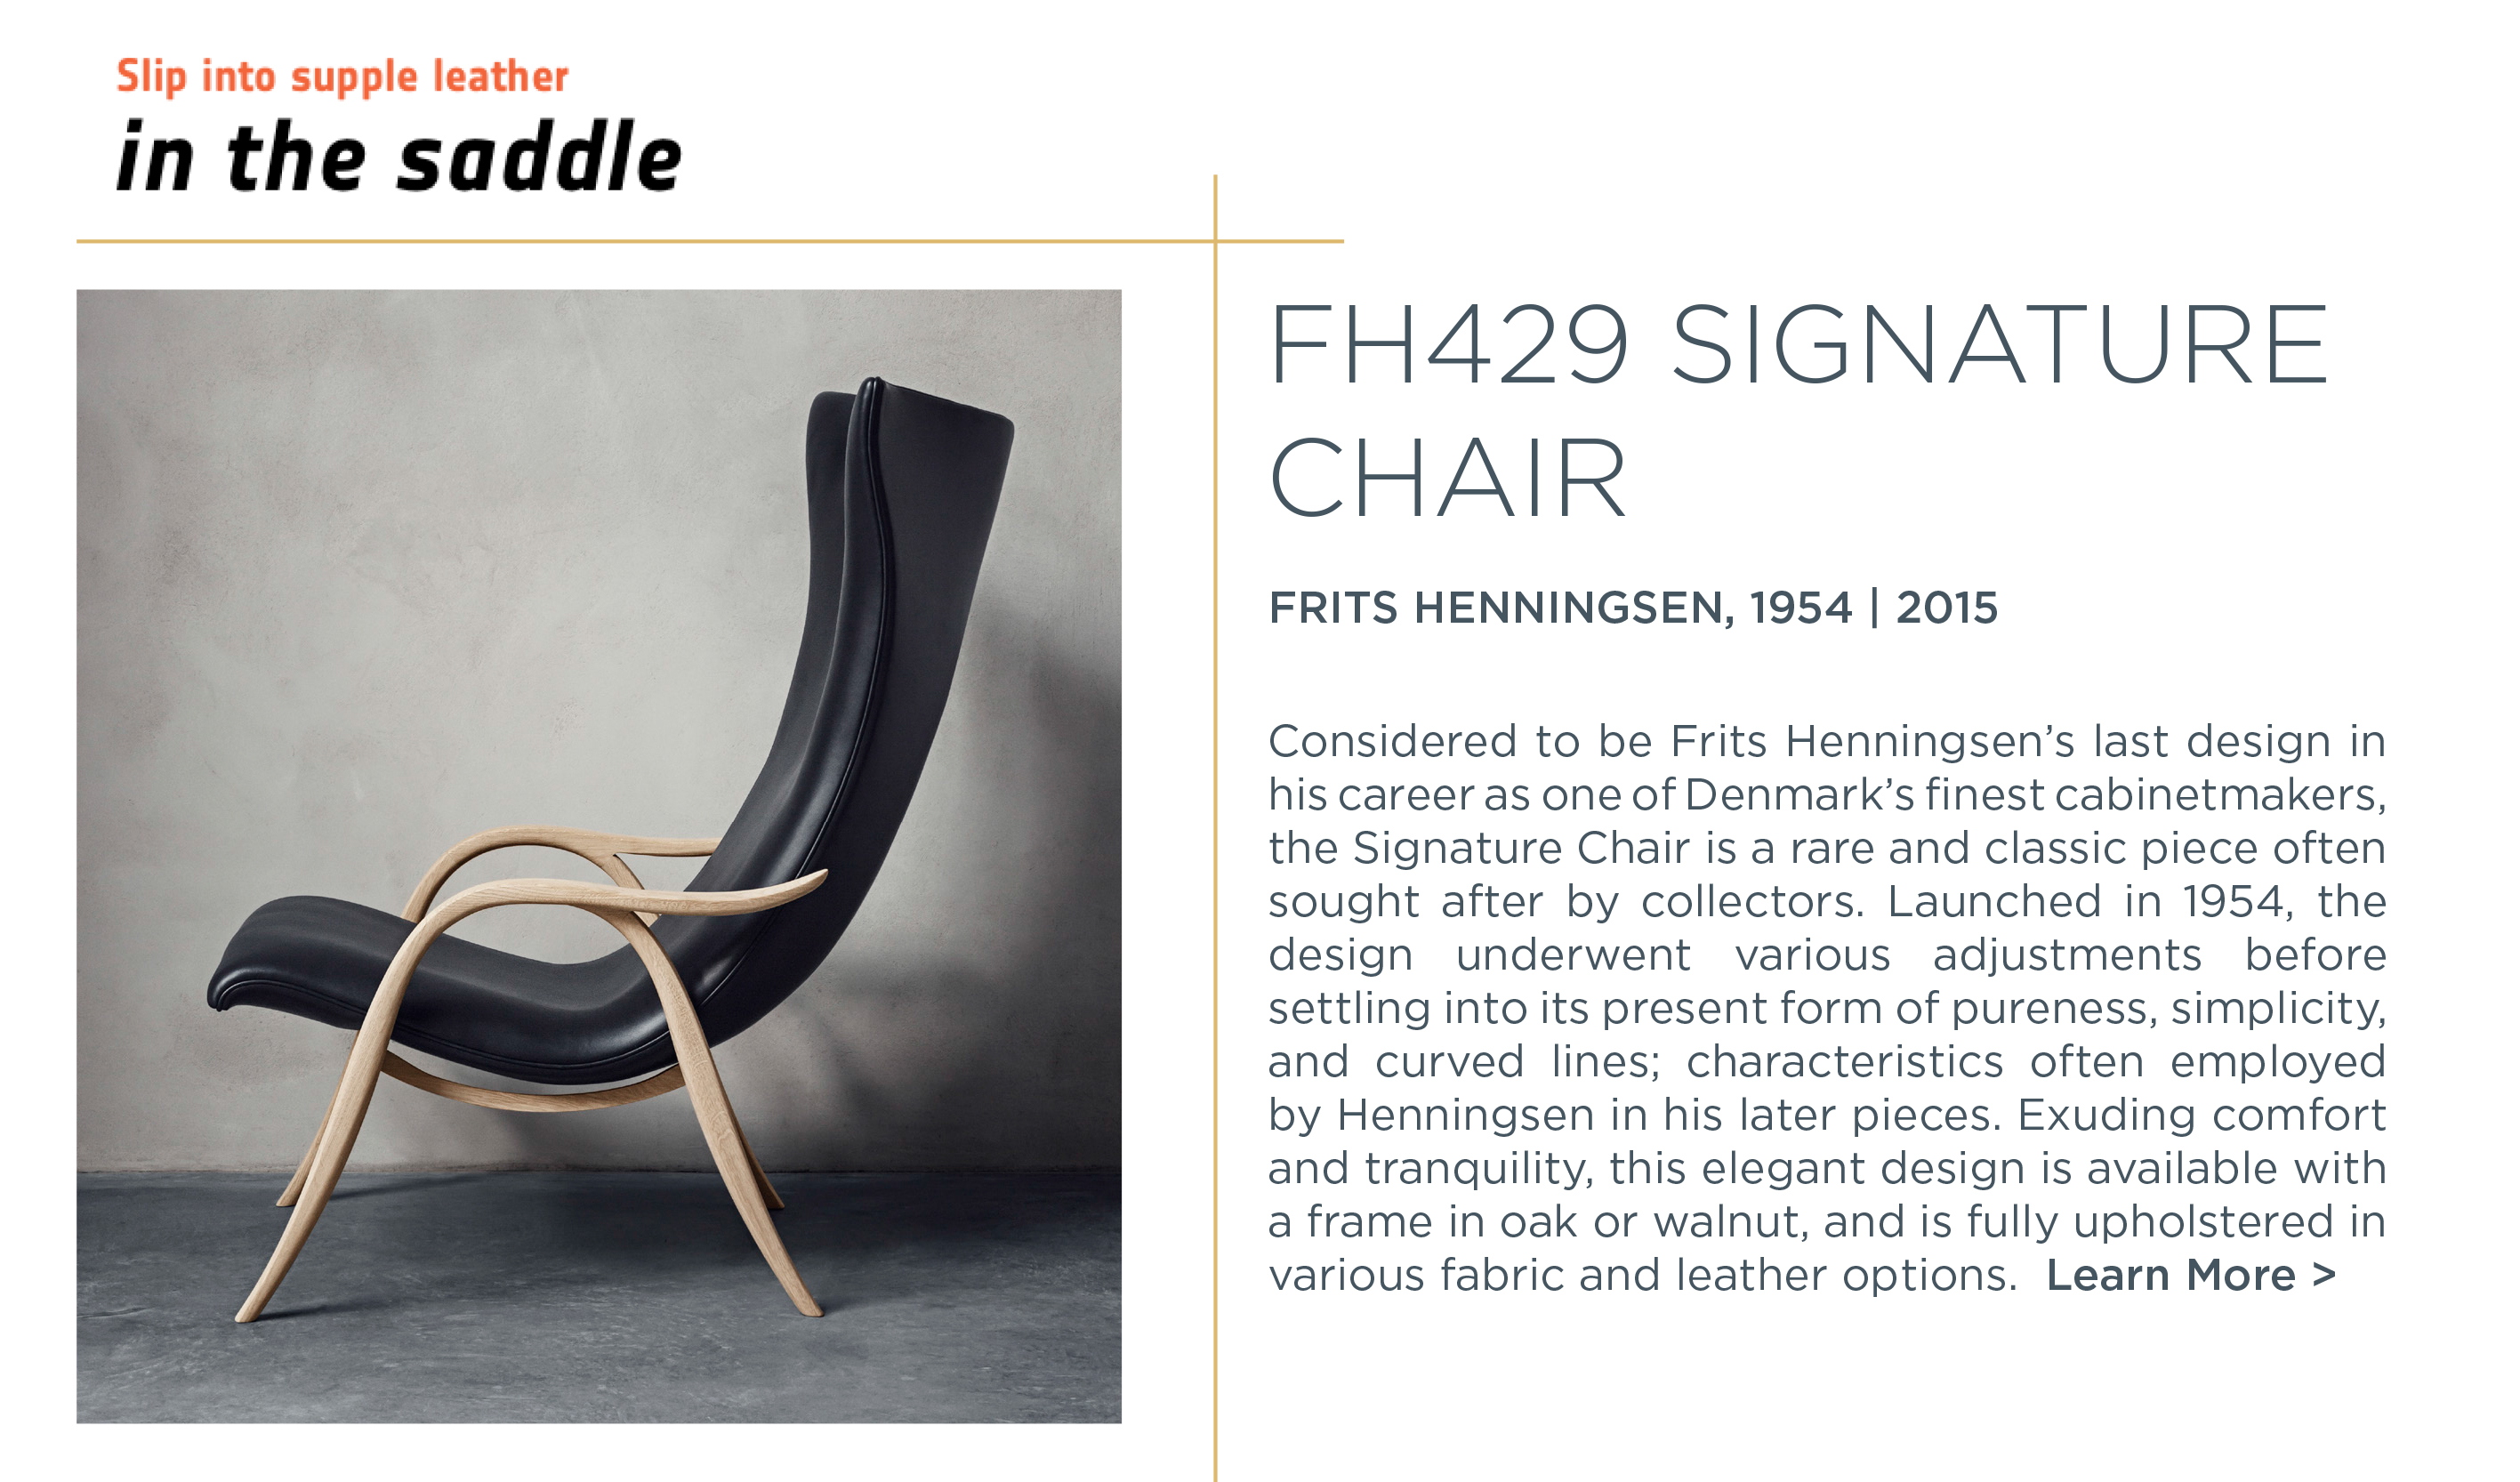 1 fh429 signature chare frits henningsen carl hansen and son suite ny